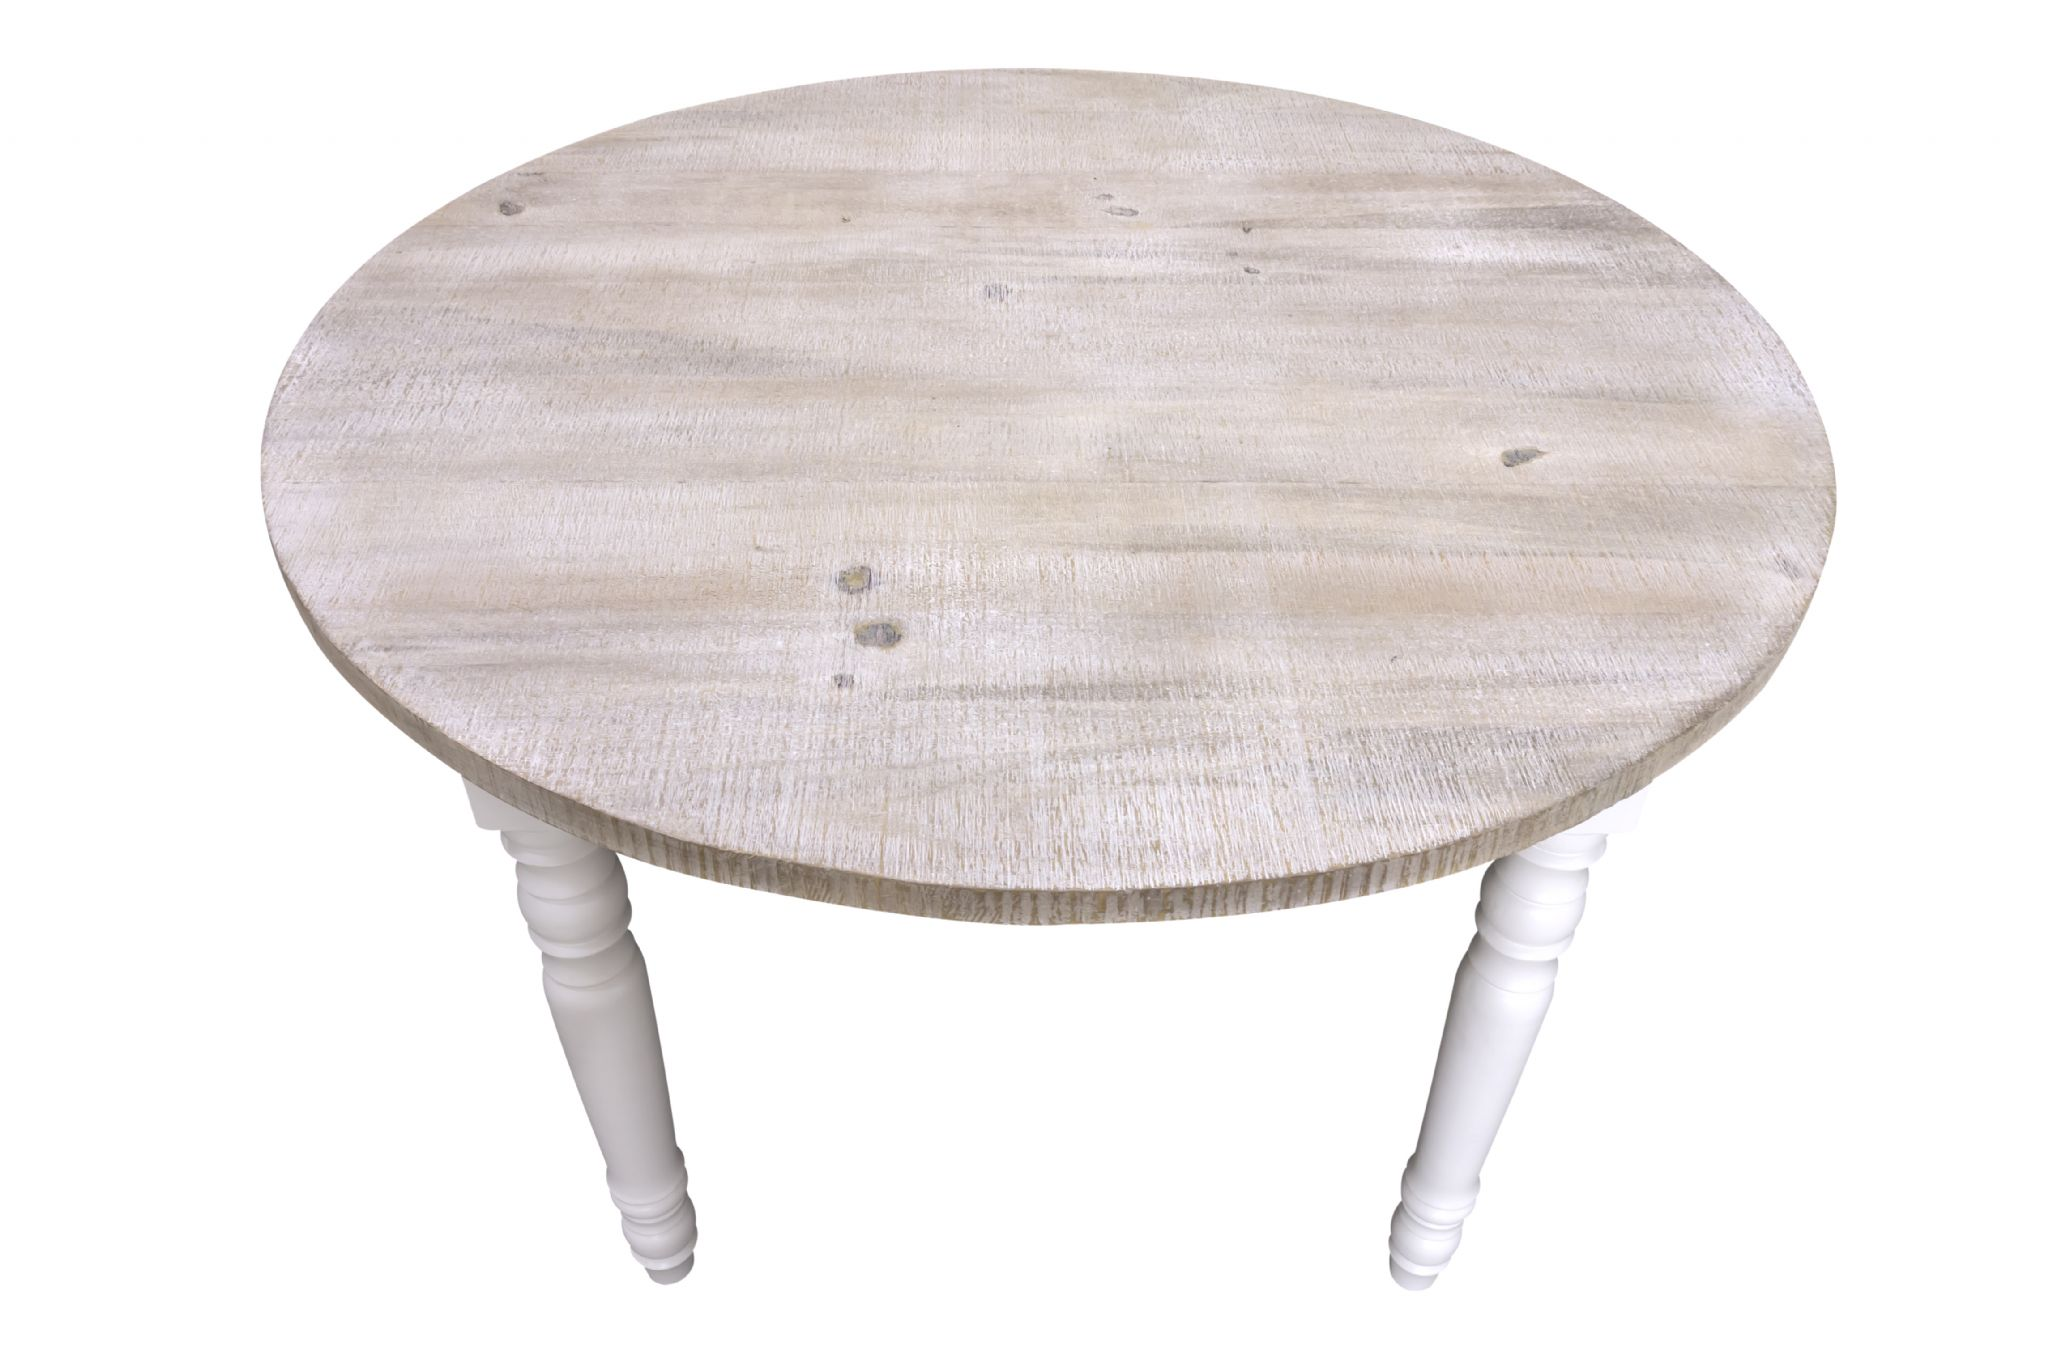 painted furniture shabby chic style dining shabby chic round kitchen table bedroomlicious shabby chic bedrooms